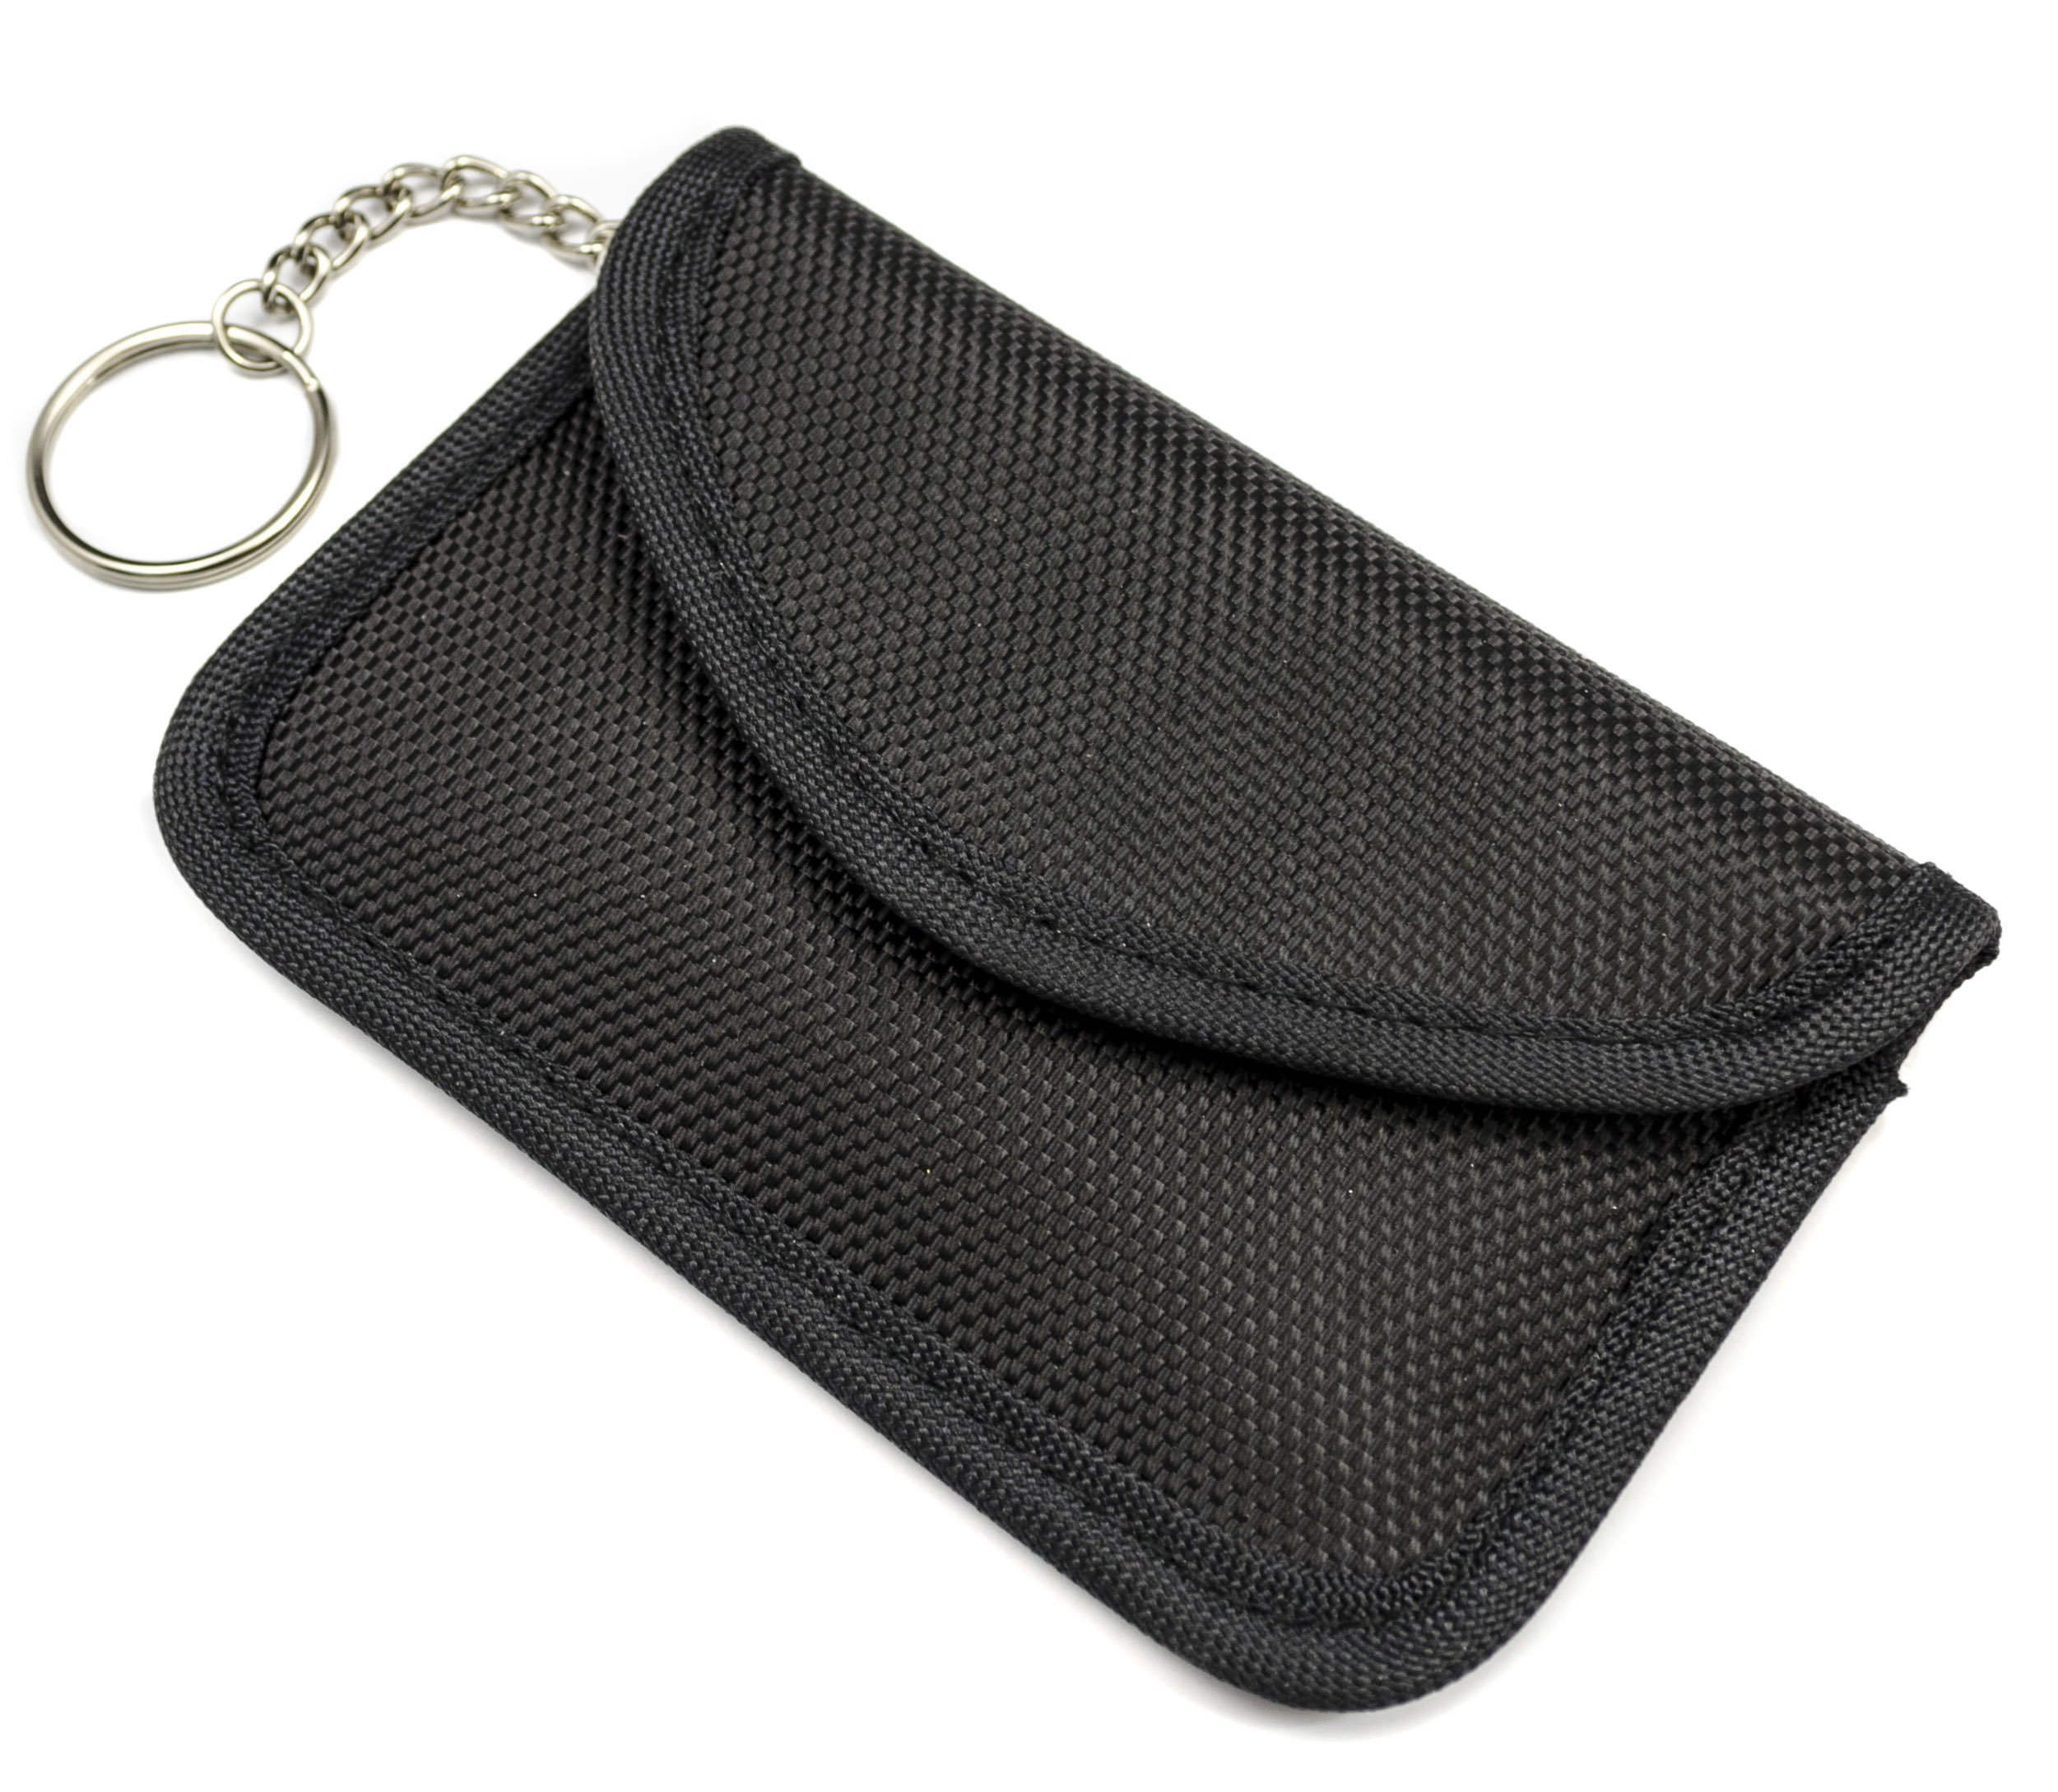 Image for Horizontal RFID Signal Blocking Wallet for Proximity Keys